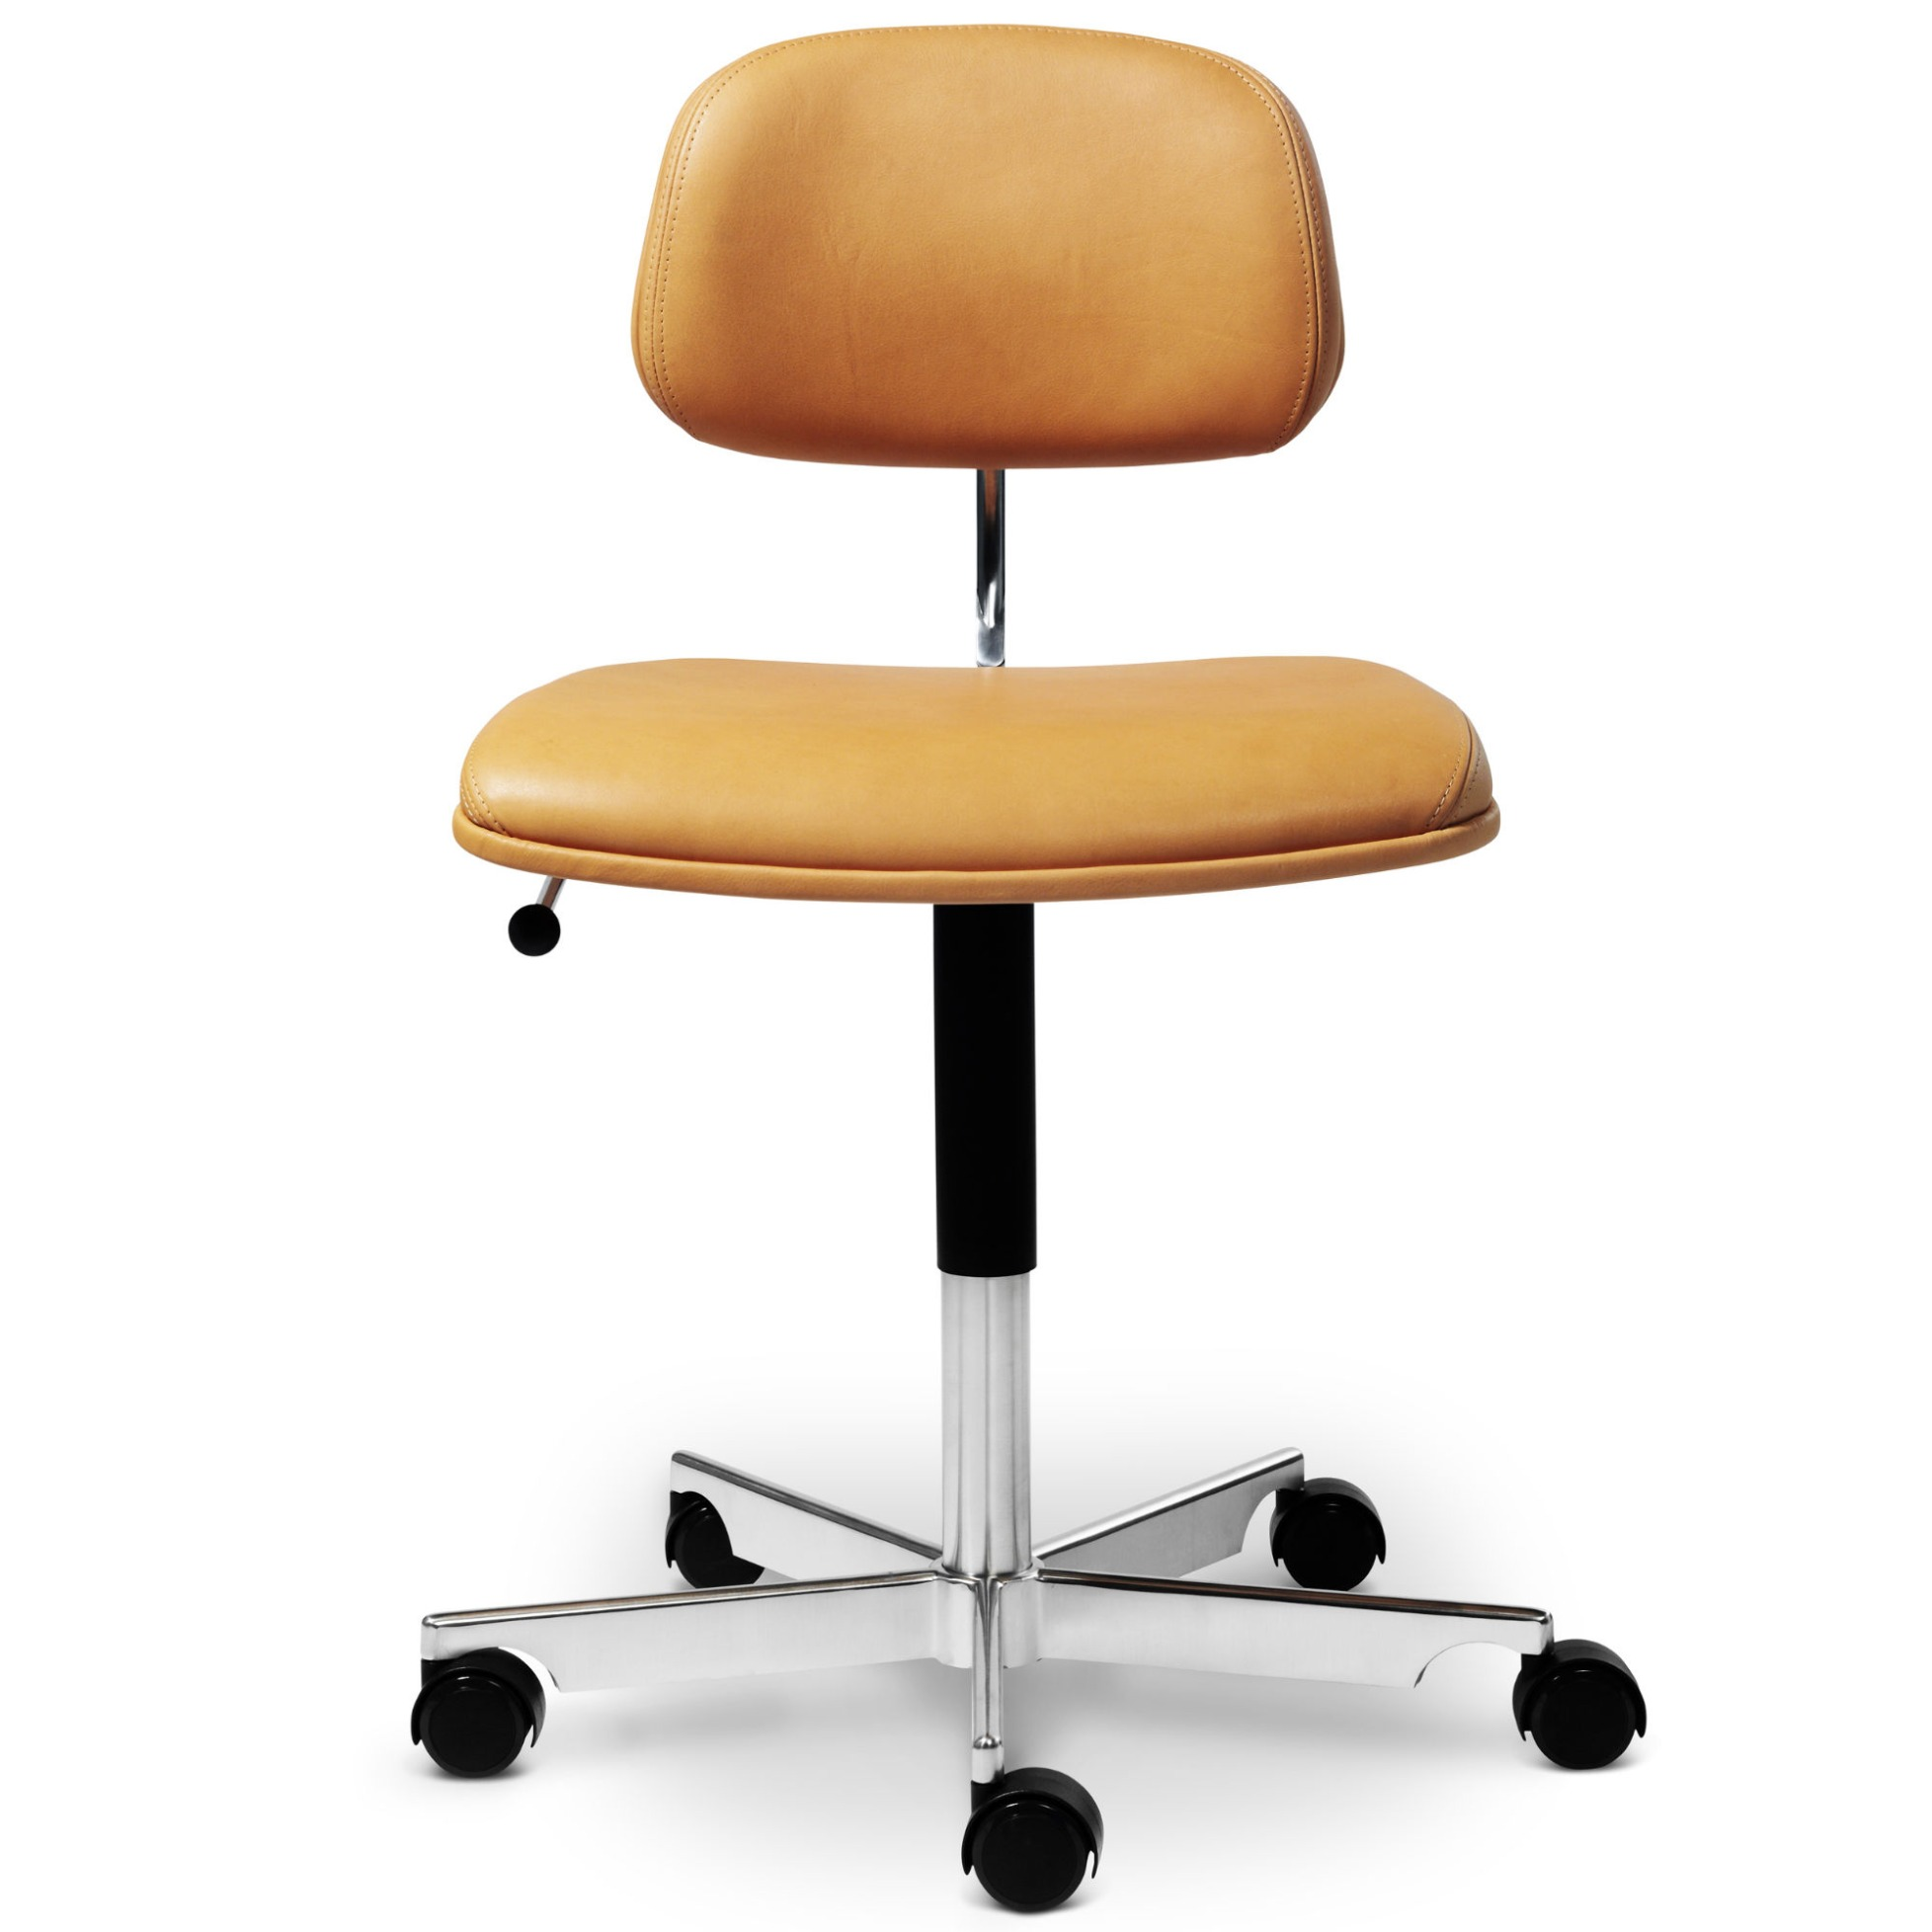 Kevi Chair Office Swivel Chair Kevi 2534 By Engelbrechts